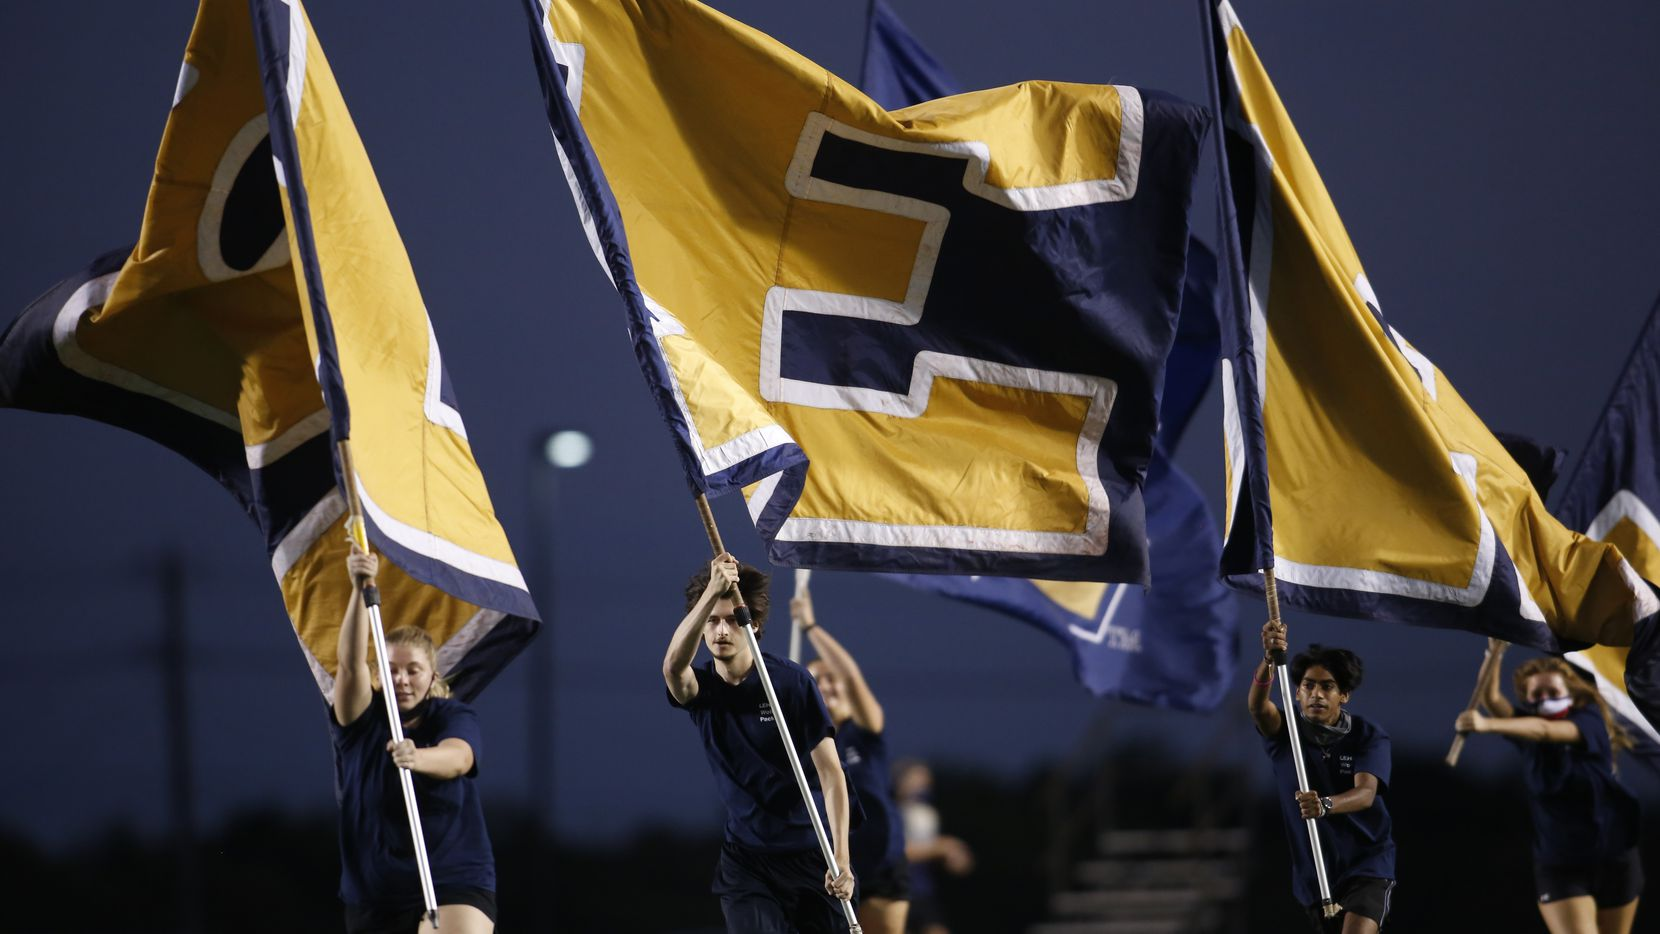 A group of Little Elm Lobos flag wavers take to the spotlight following a first half Lobos touchdown. Little Elm defeated Plano West by the score of 23-9. The two teams played their non-district 6A football game at Lobo Stadium in Little Elm on October 9, 2020.